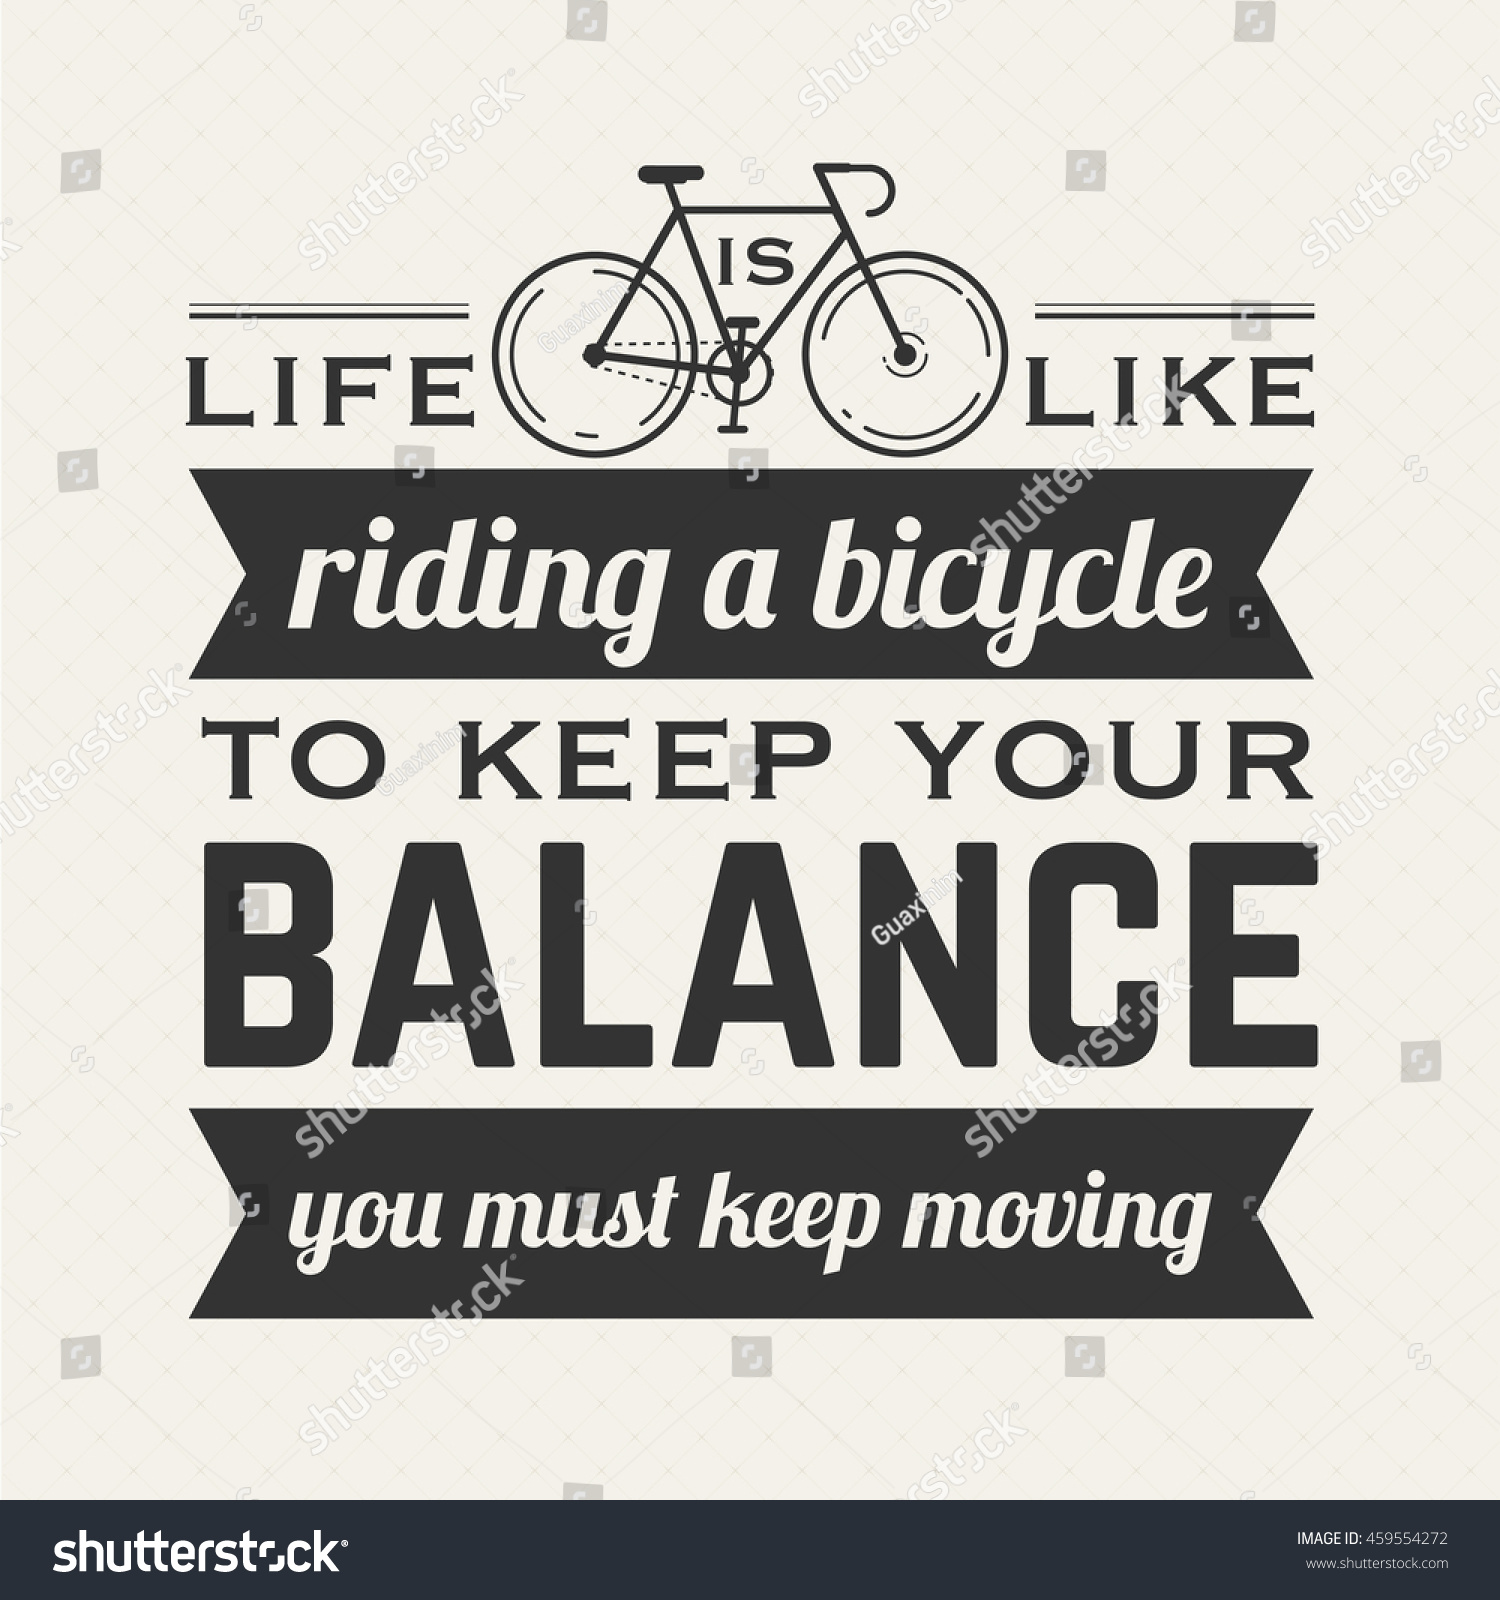 To keep your balance you must keep moving hipster poster 459554272